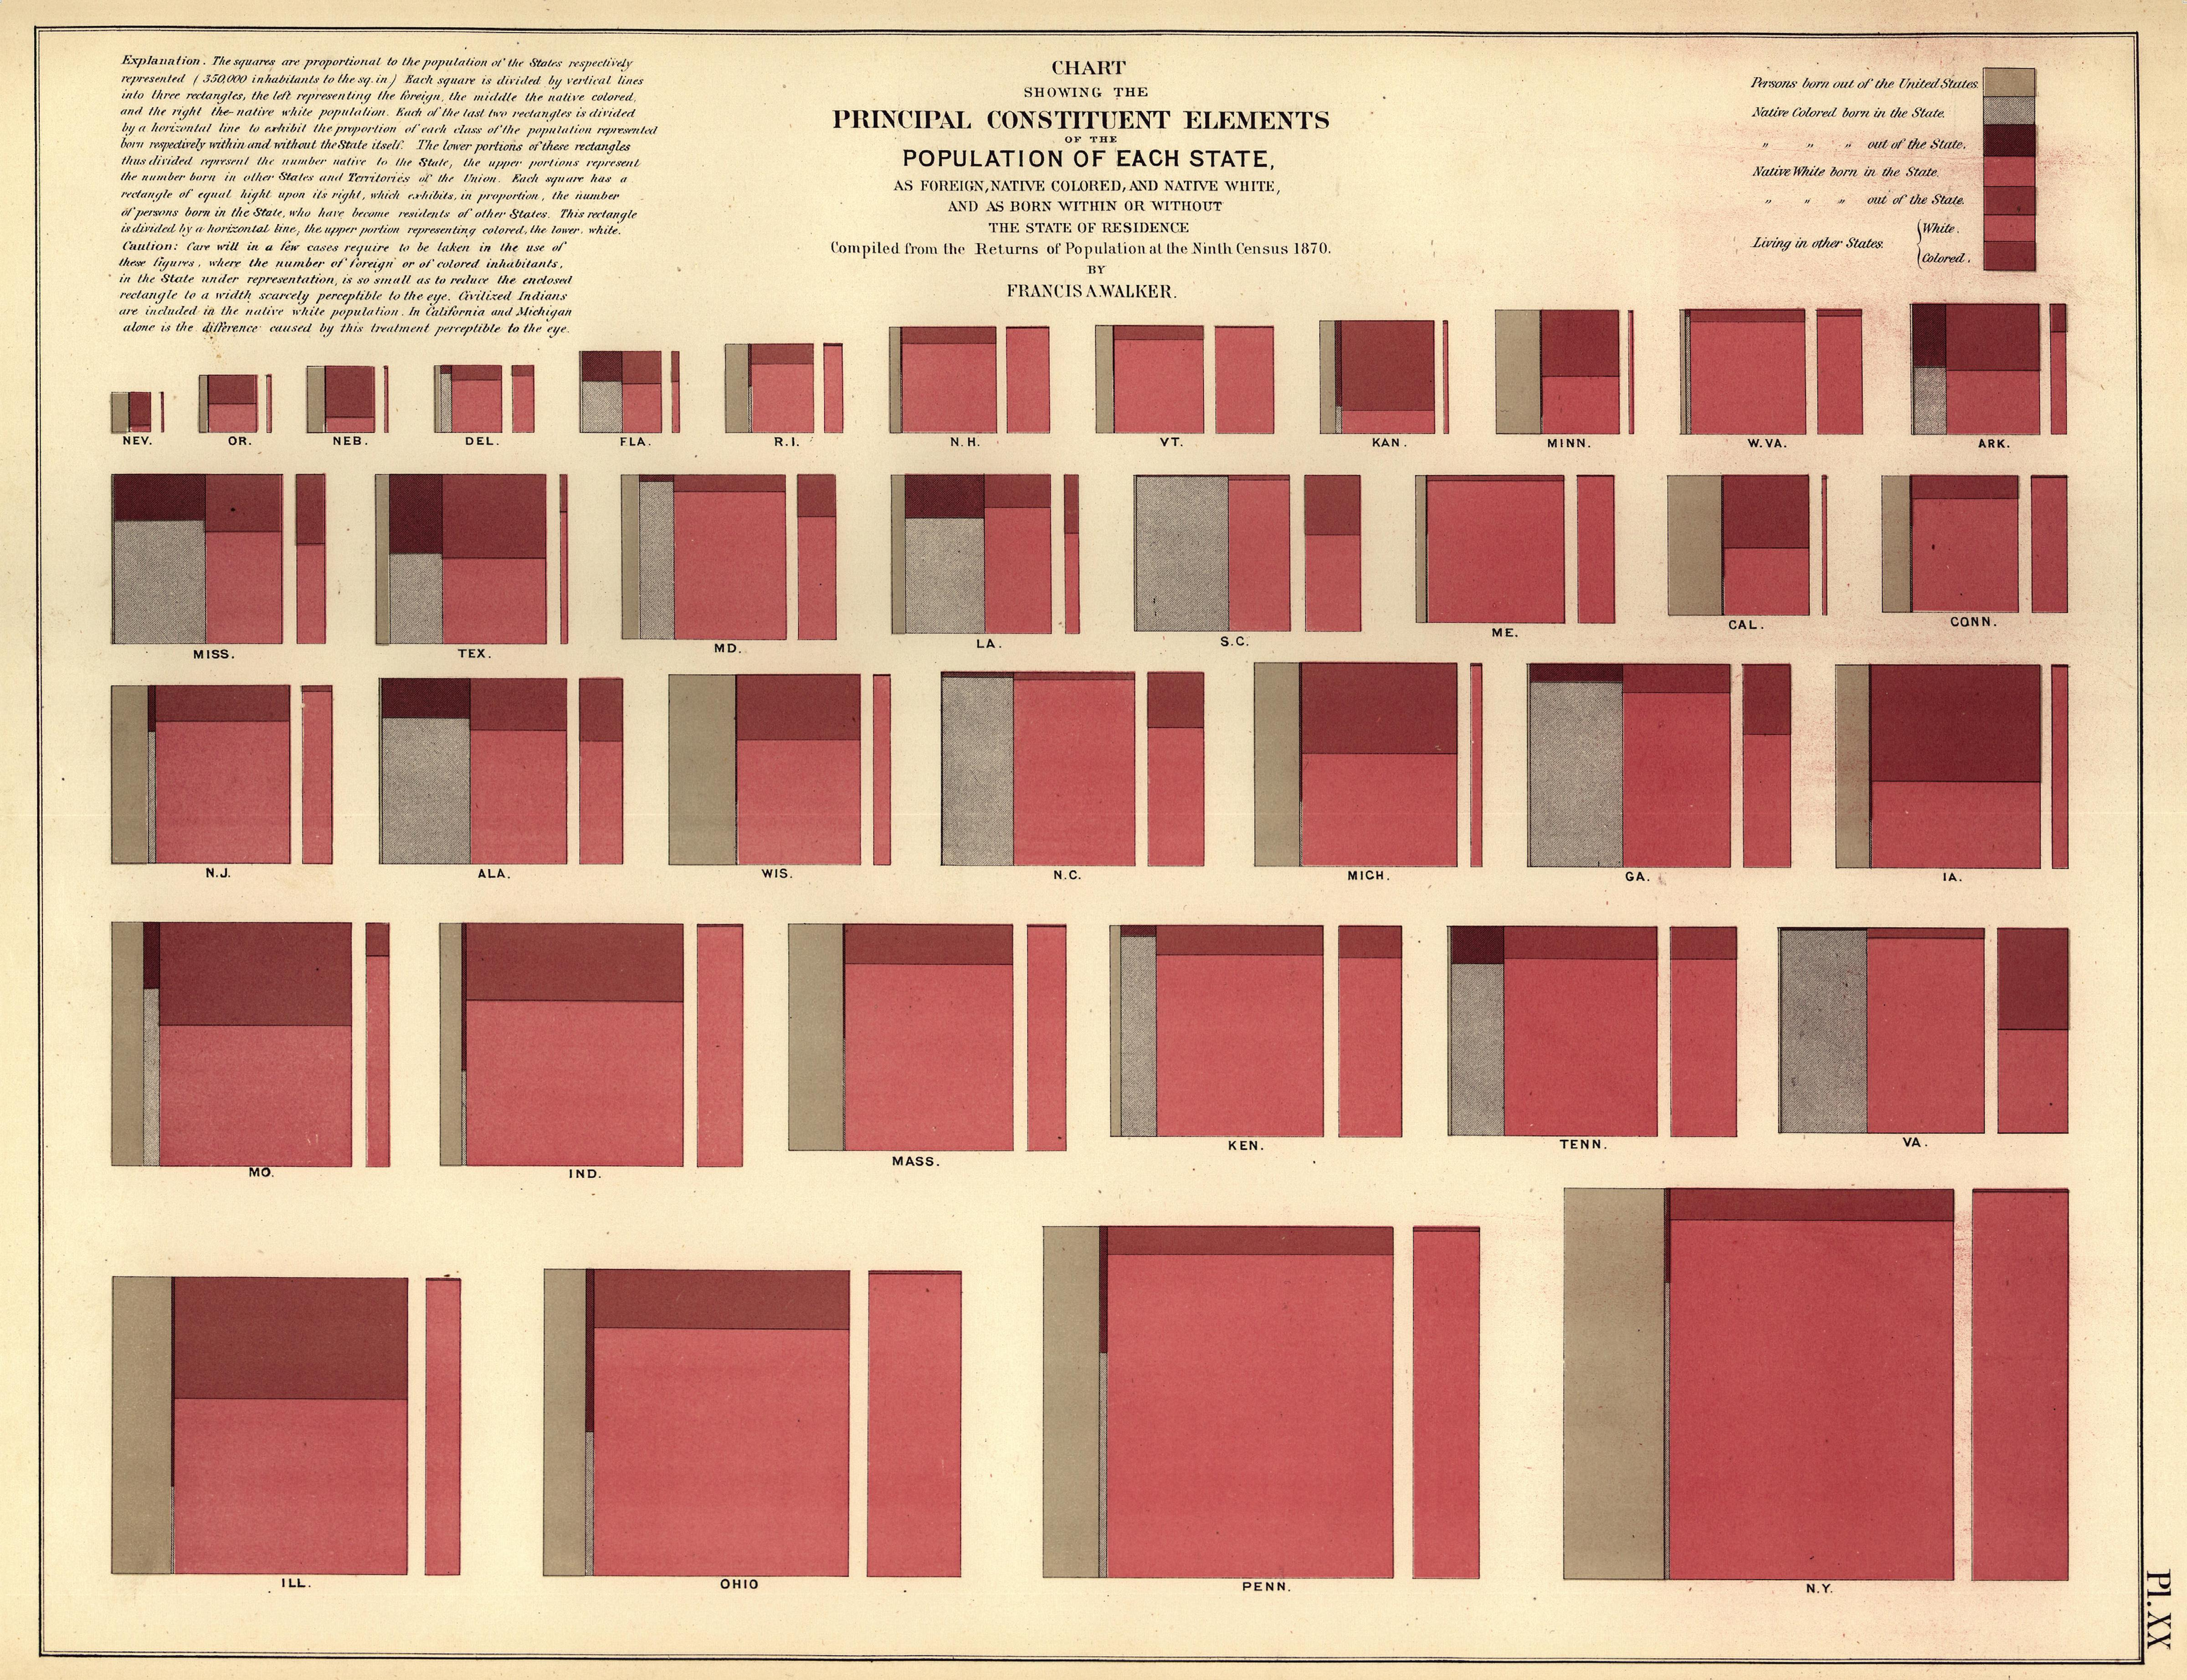 Chart Showing the Principal Constituent Elements of the Population of Each State, 1870